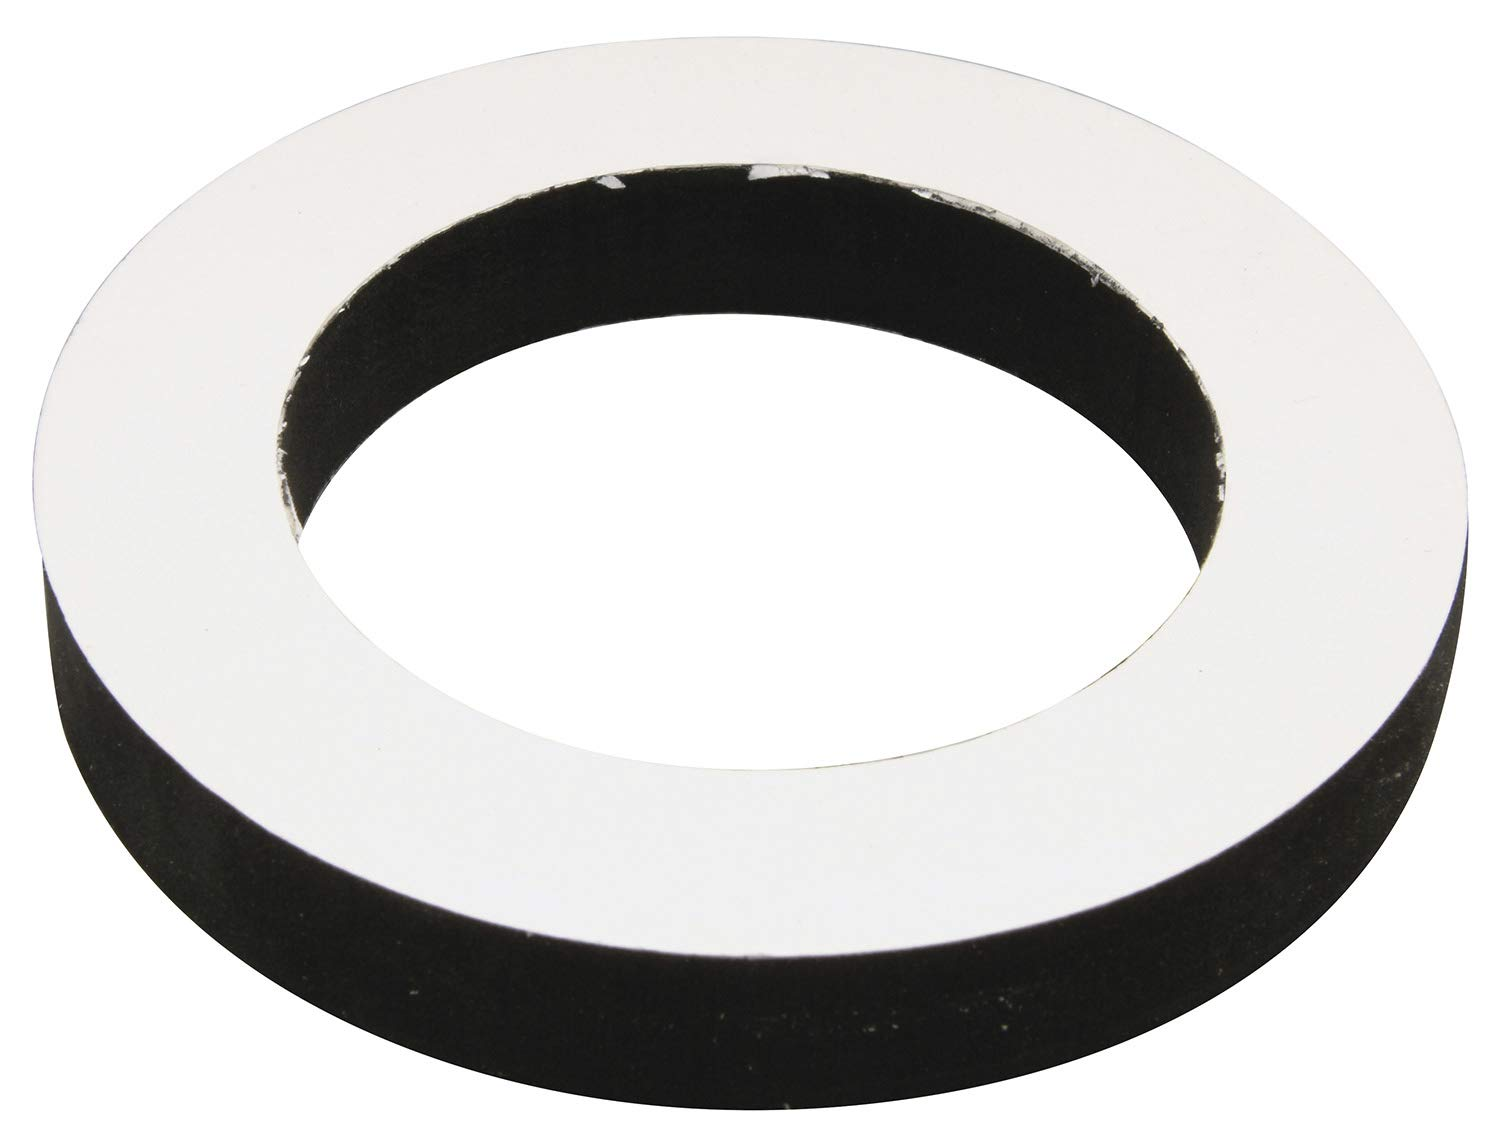 Zurn Z5977-NEO Neo-Seal Gasket Kit for Wall Mounted Bowls for Model Z5977